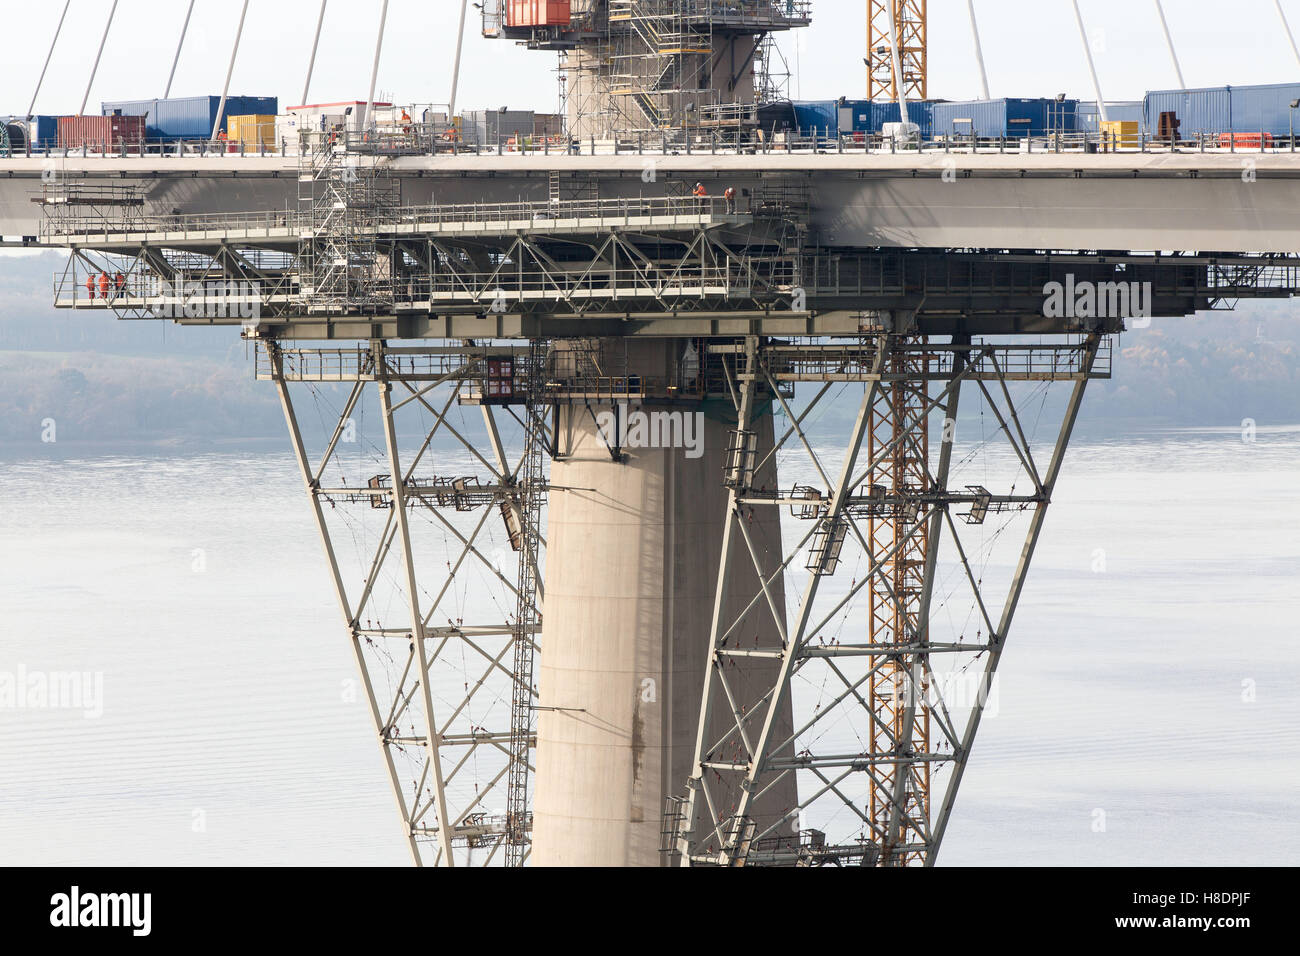 Queensferry, Edinburgh, Scotland, 11th, November, 2016. Forth Bridges.  The 2nd Road bridge is nearing completion and this photo show construction work and assemblies of the northern pier and pontoon.  Phil Hutchinson/Alamy Live News Stock Photo